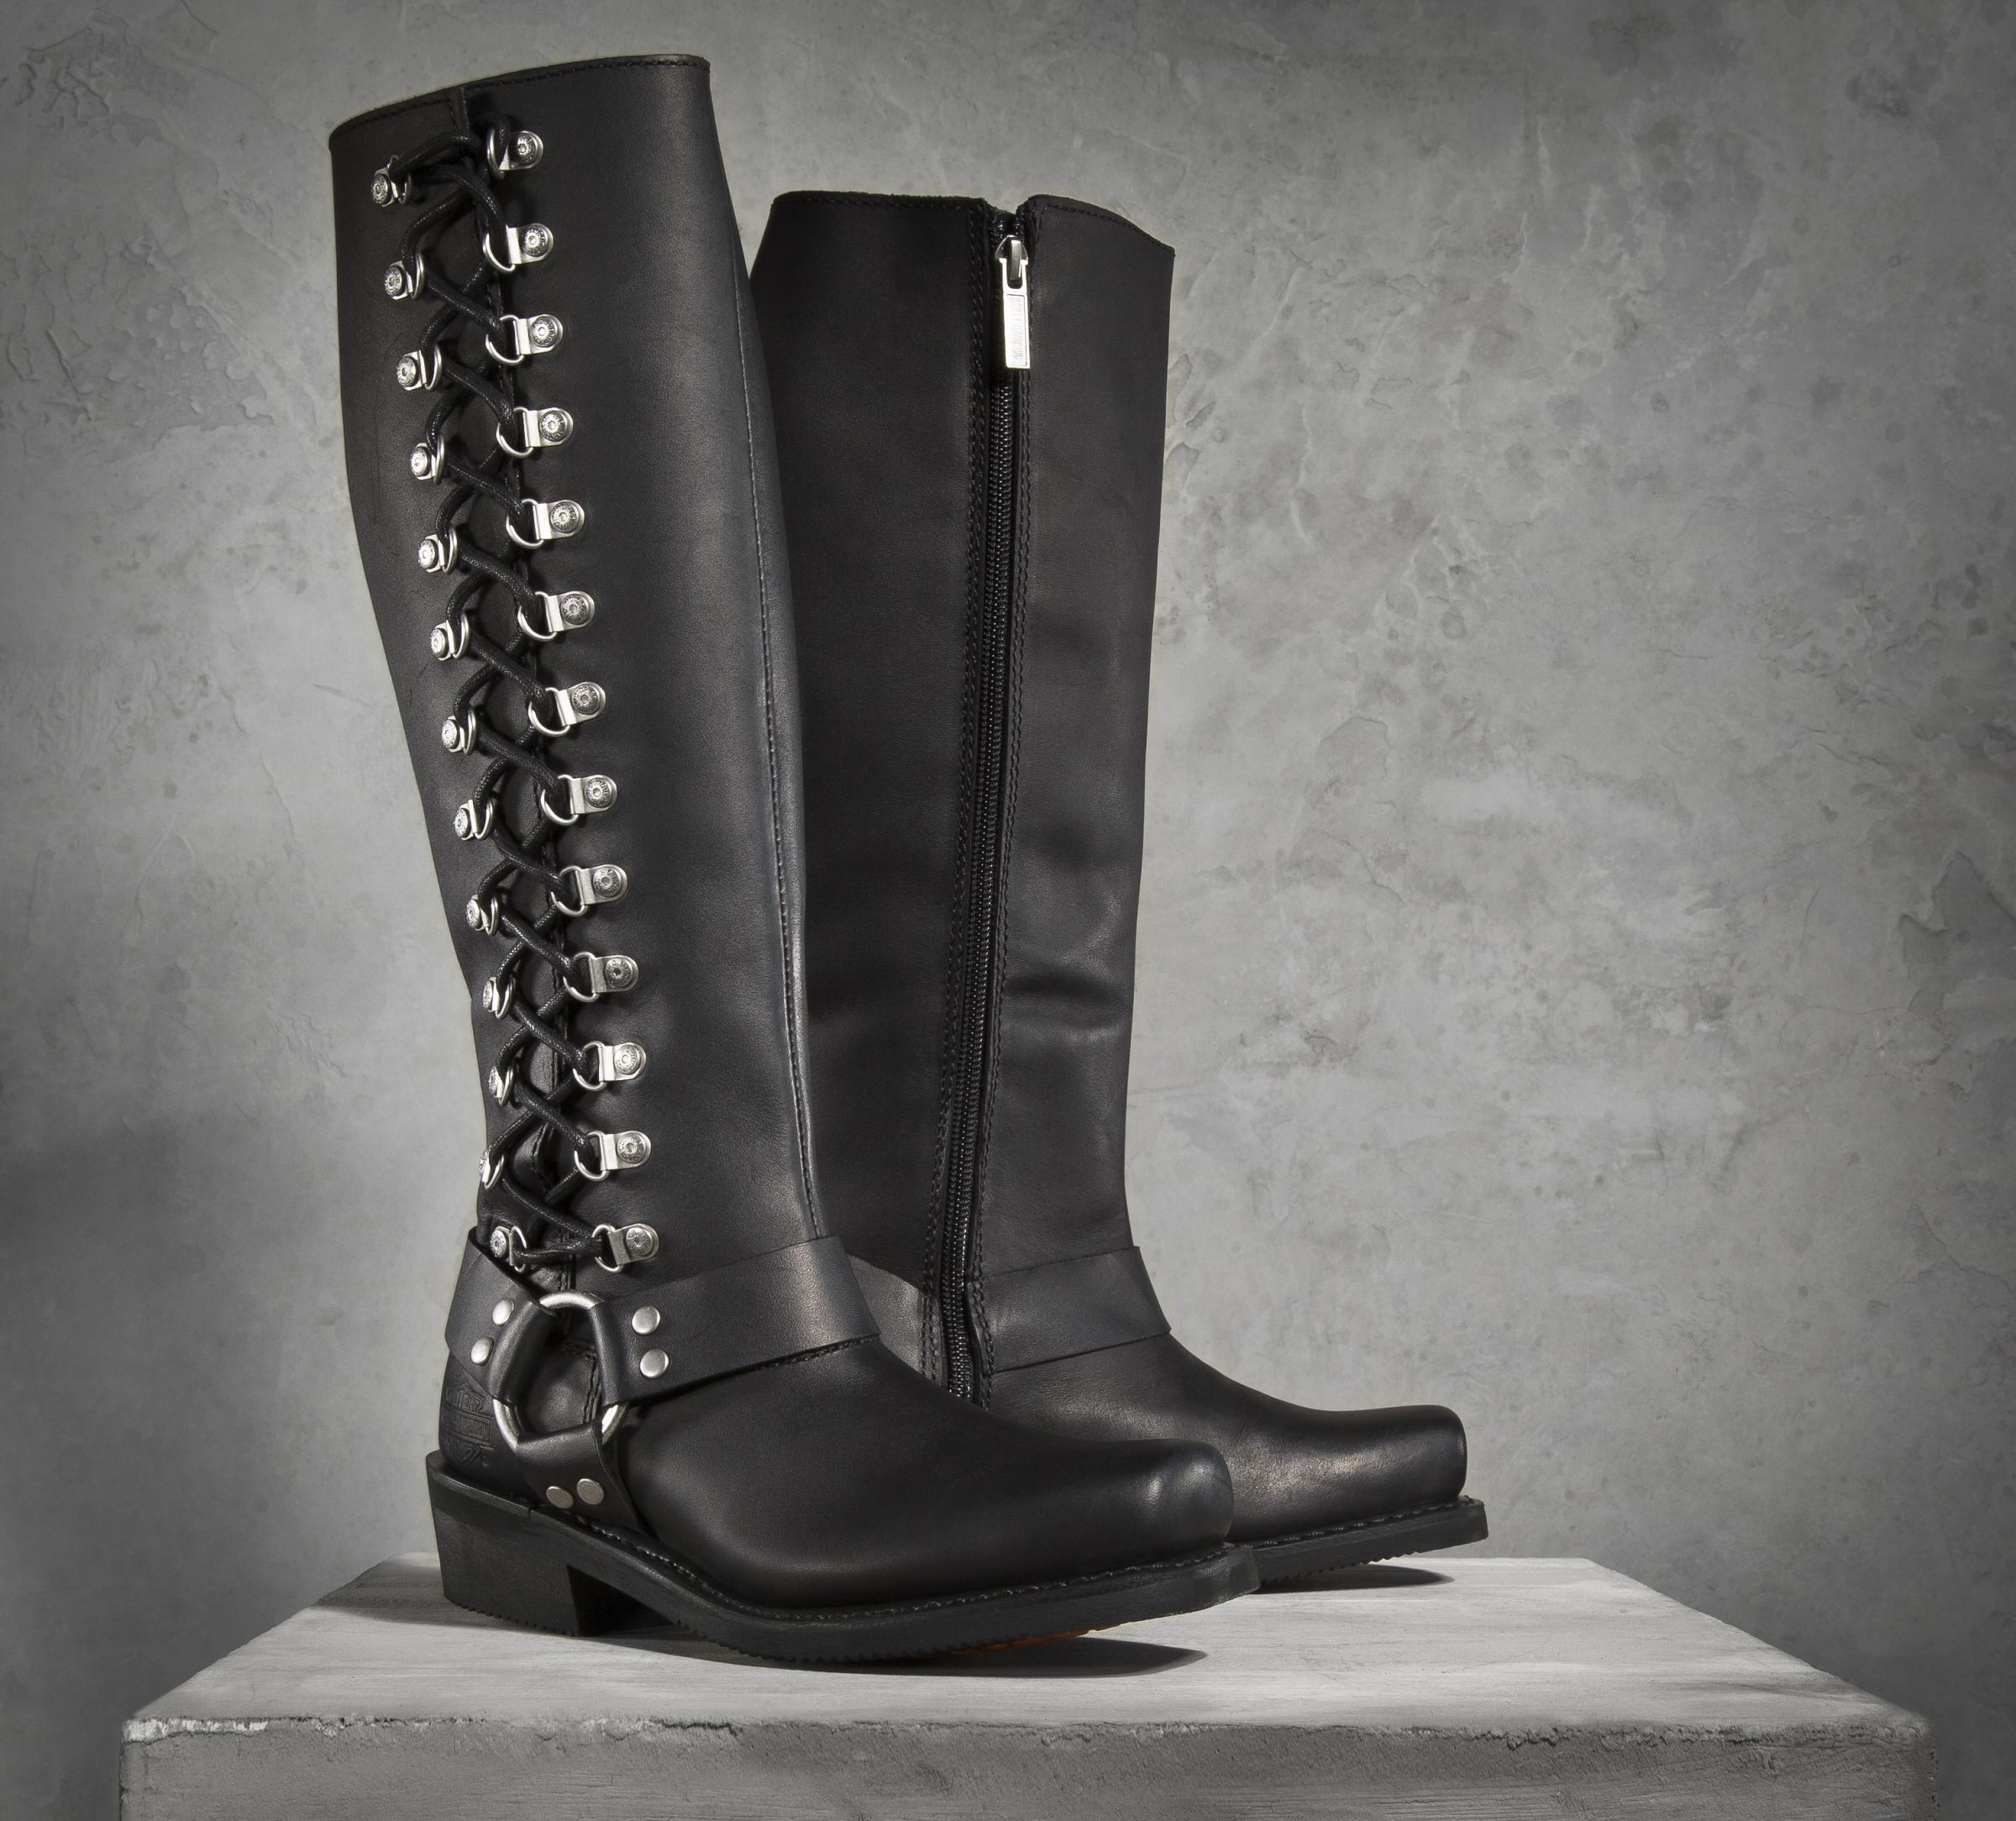 Awesome Get Beautiful Harley Davidson Boots For Women In Your Collections - StyleSkier.com